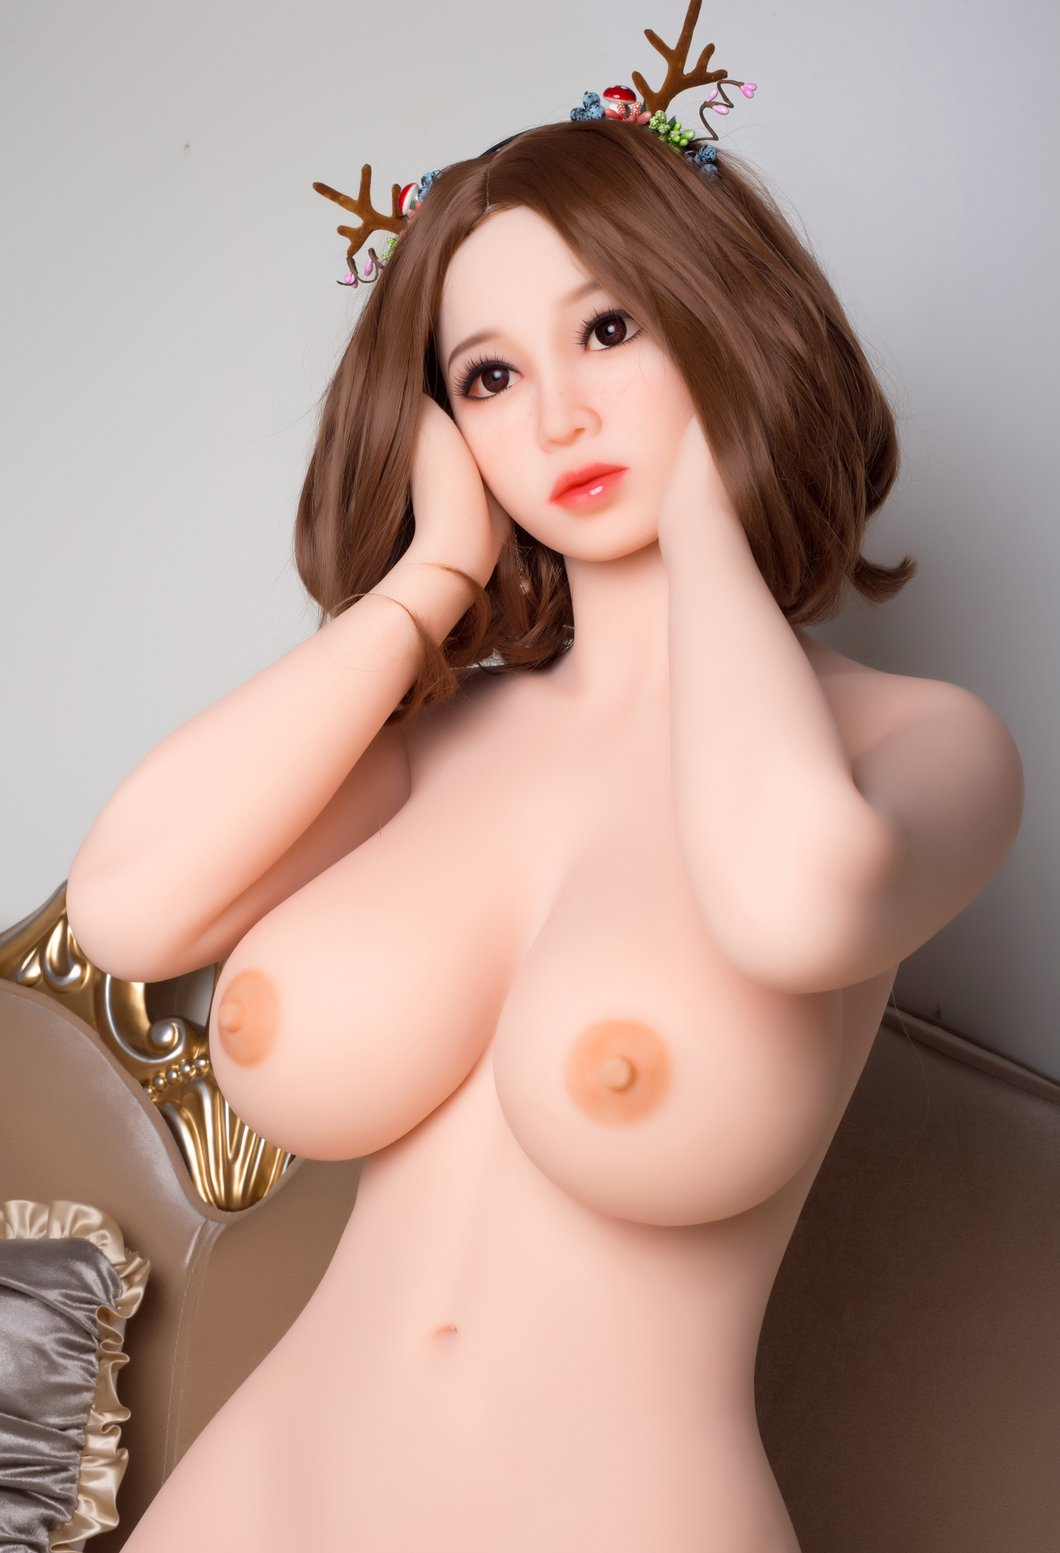 juliane 161cm brown hair curvy big boobs tpe wm bbw sex doll(7)